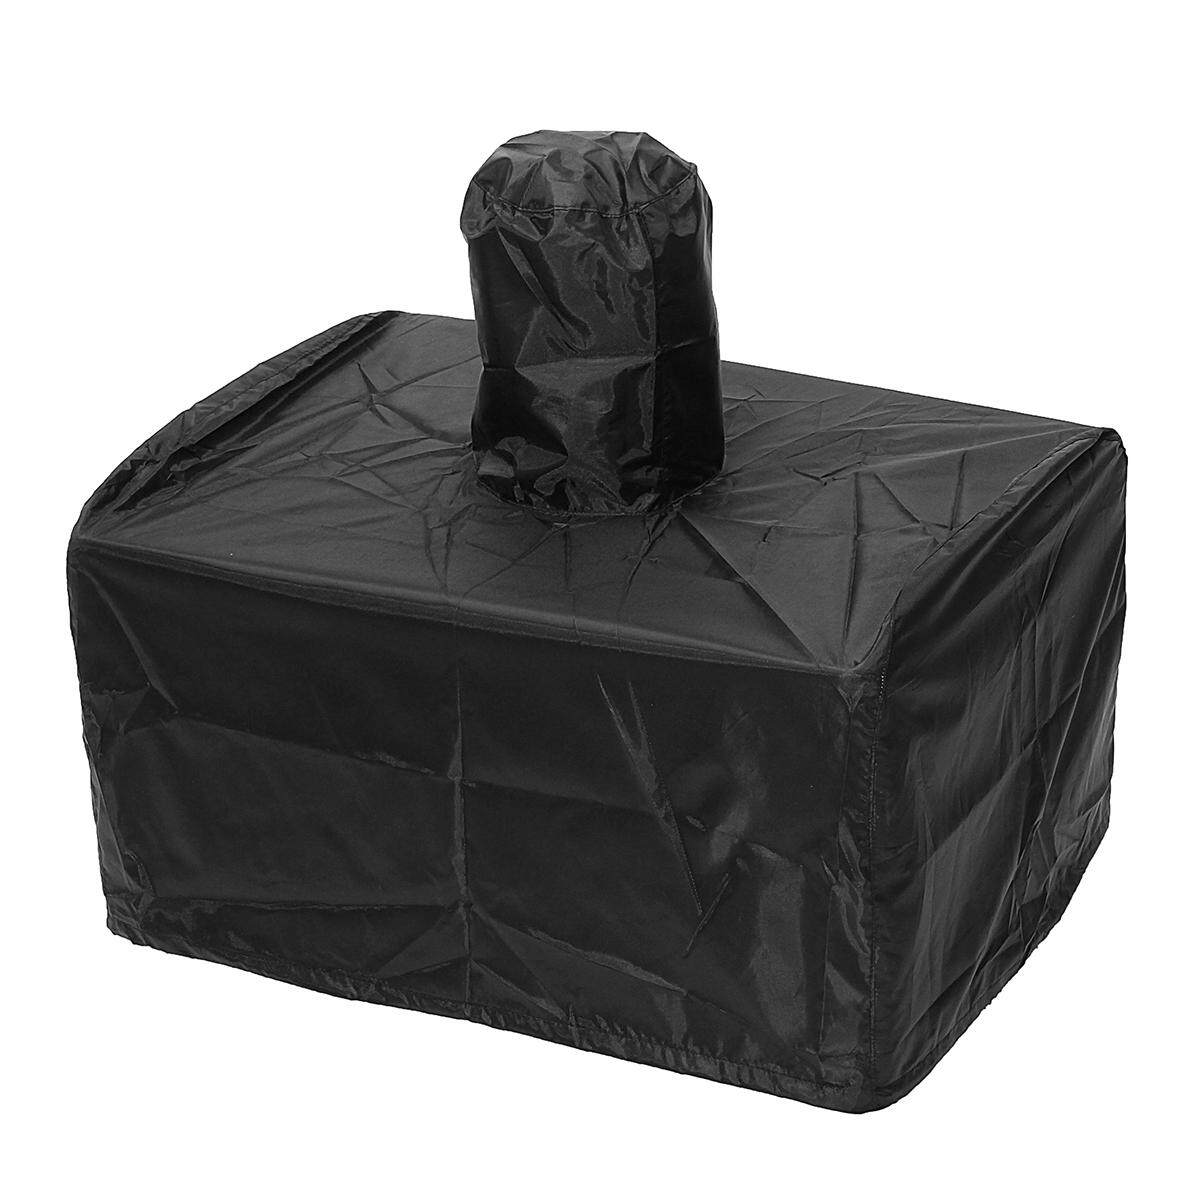 Outdoor Pizza Oven Rain Cover Charcoal Fired Bread Oven Smoker BBQ Cover 58 x 45 x 168cm